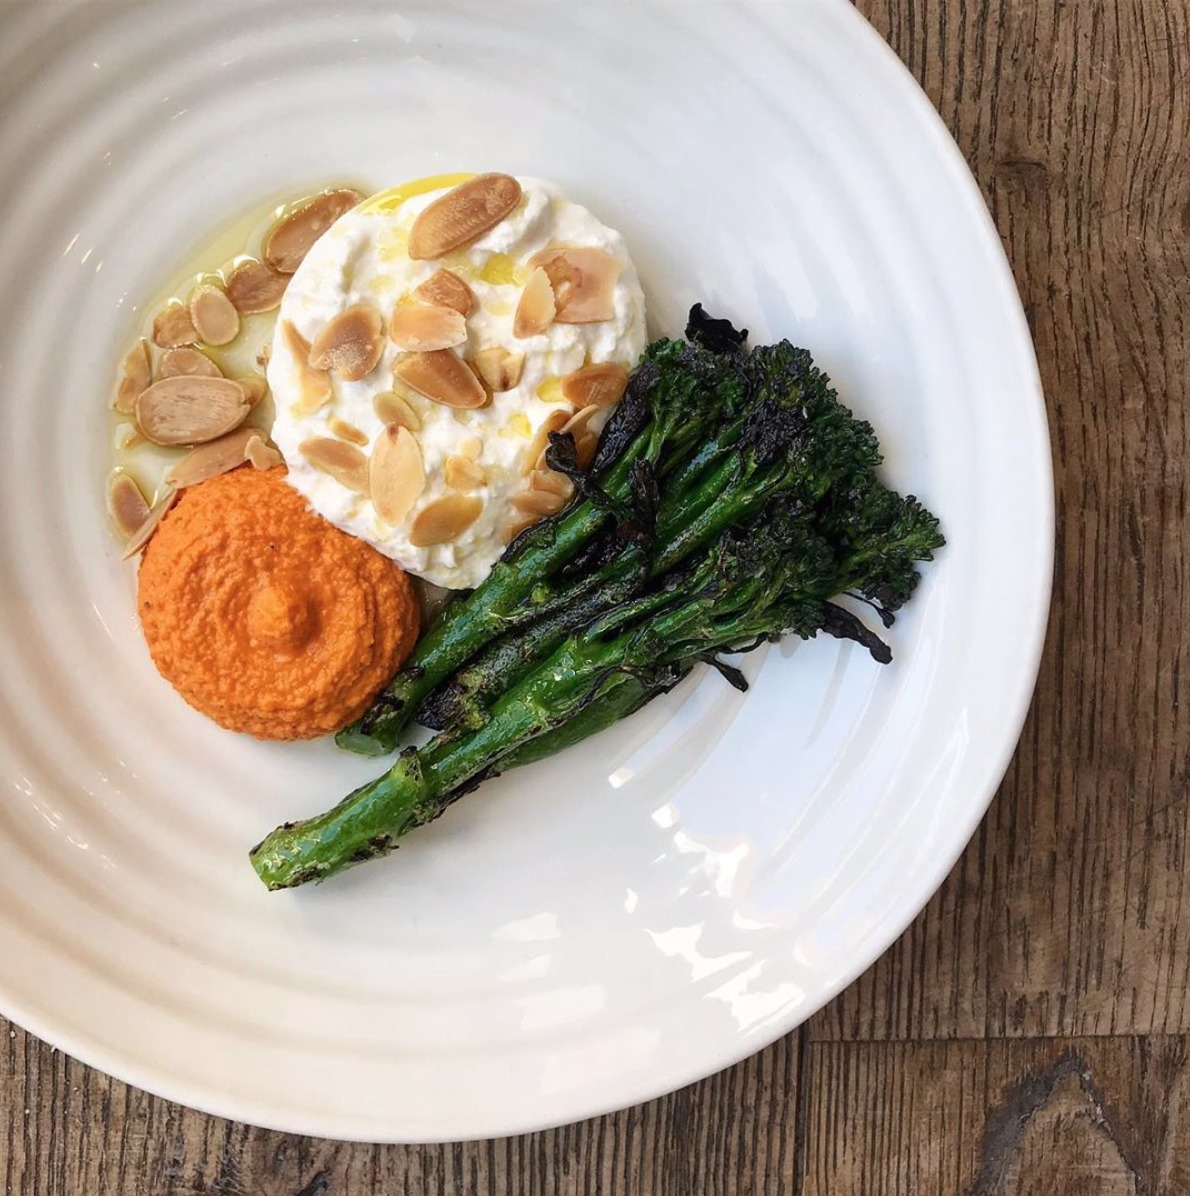 Heswall's Burnt Truffle launches new summer menu